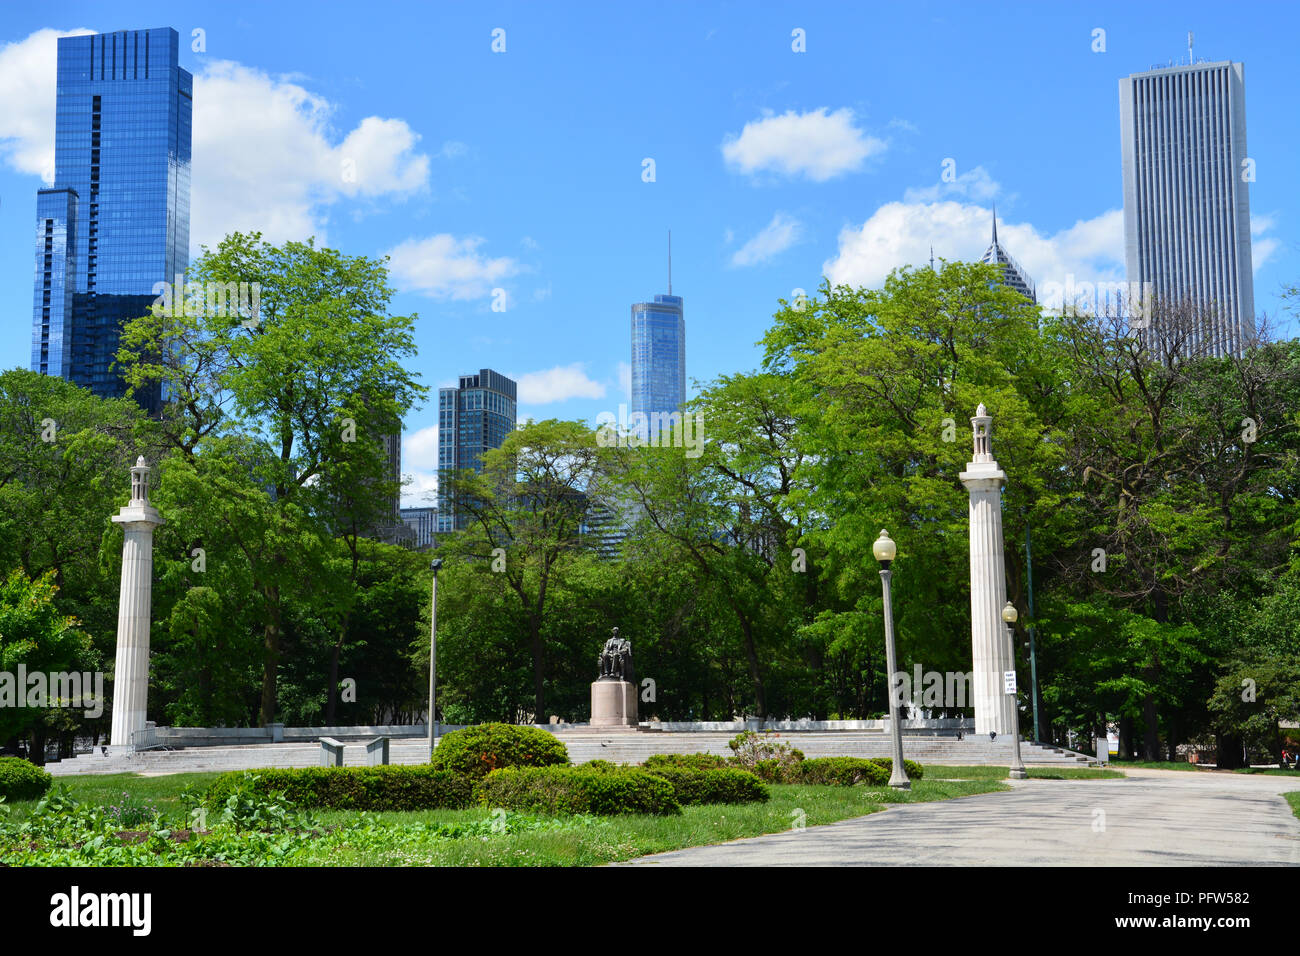 Abraham Lincoln, Head of State (aka Seated Lincoln) by Augustus Saint-Gaudens installed in Chicago's Grant Park Court of Presidents garden in 1926. - Stock Image